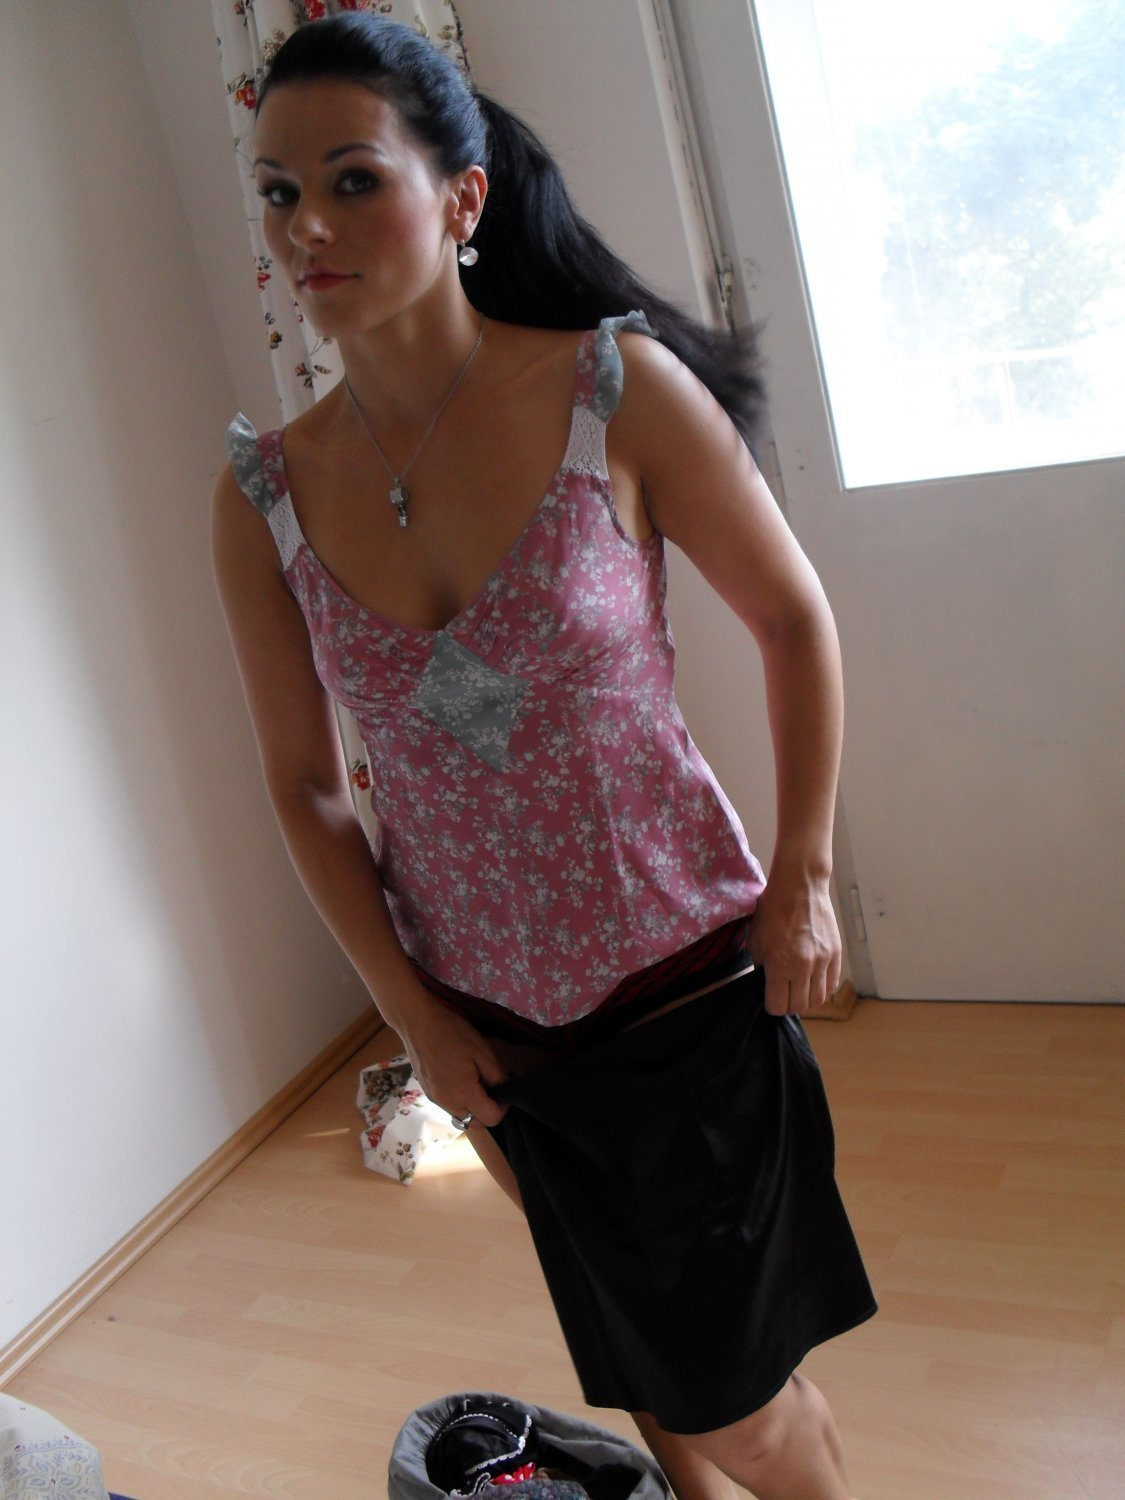 sextreff berlin private sex treffen